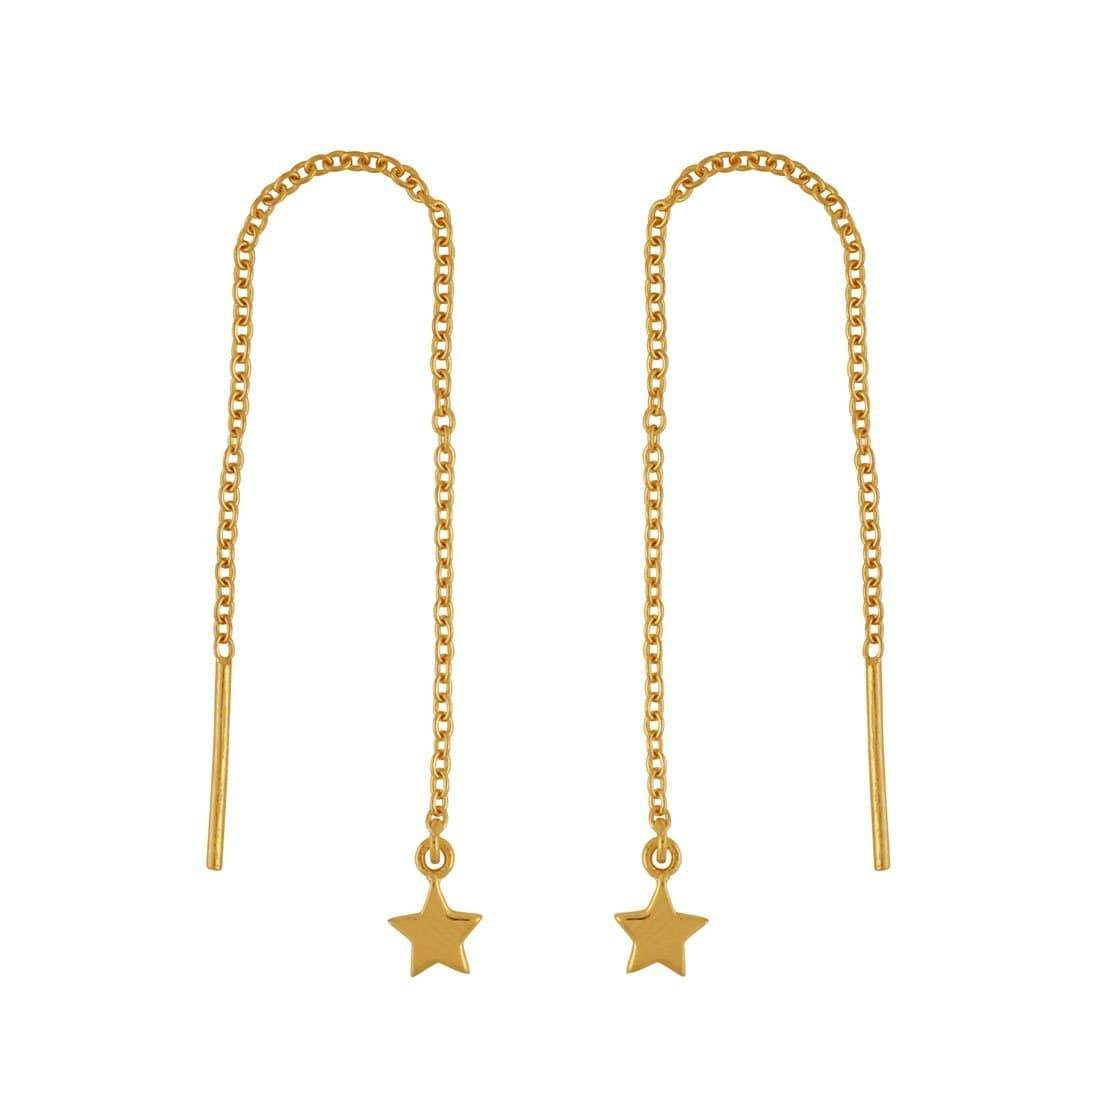 Midsummer Star Earrings Gold Stars Threaders